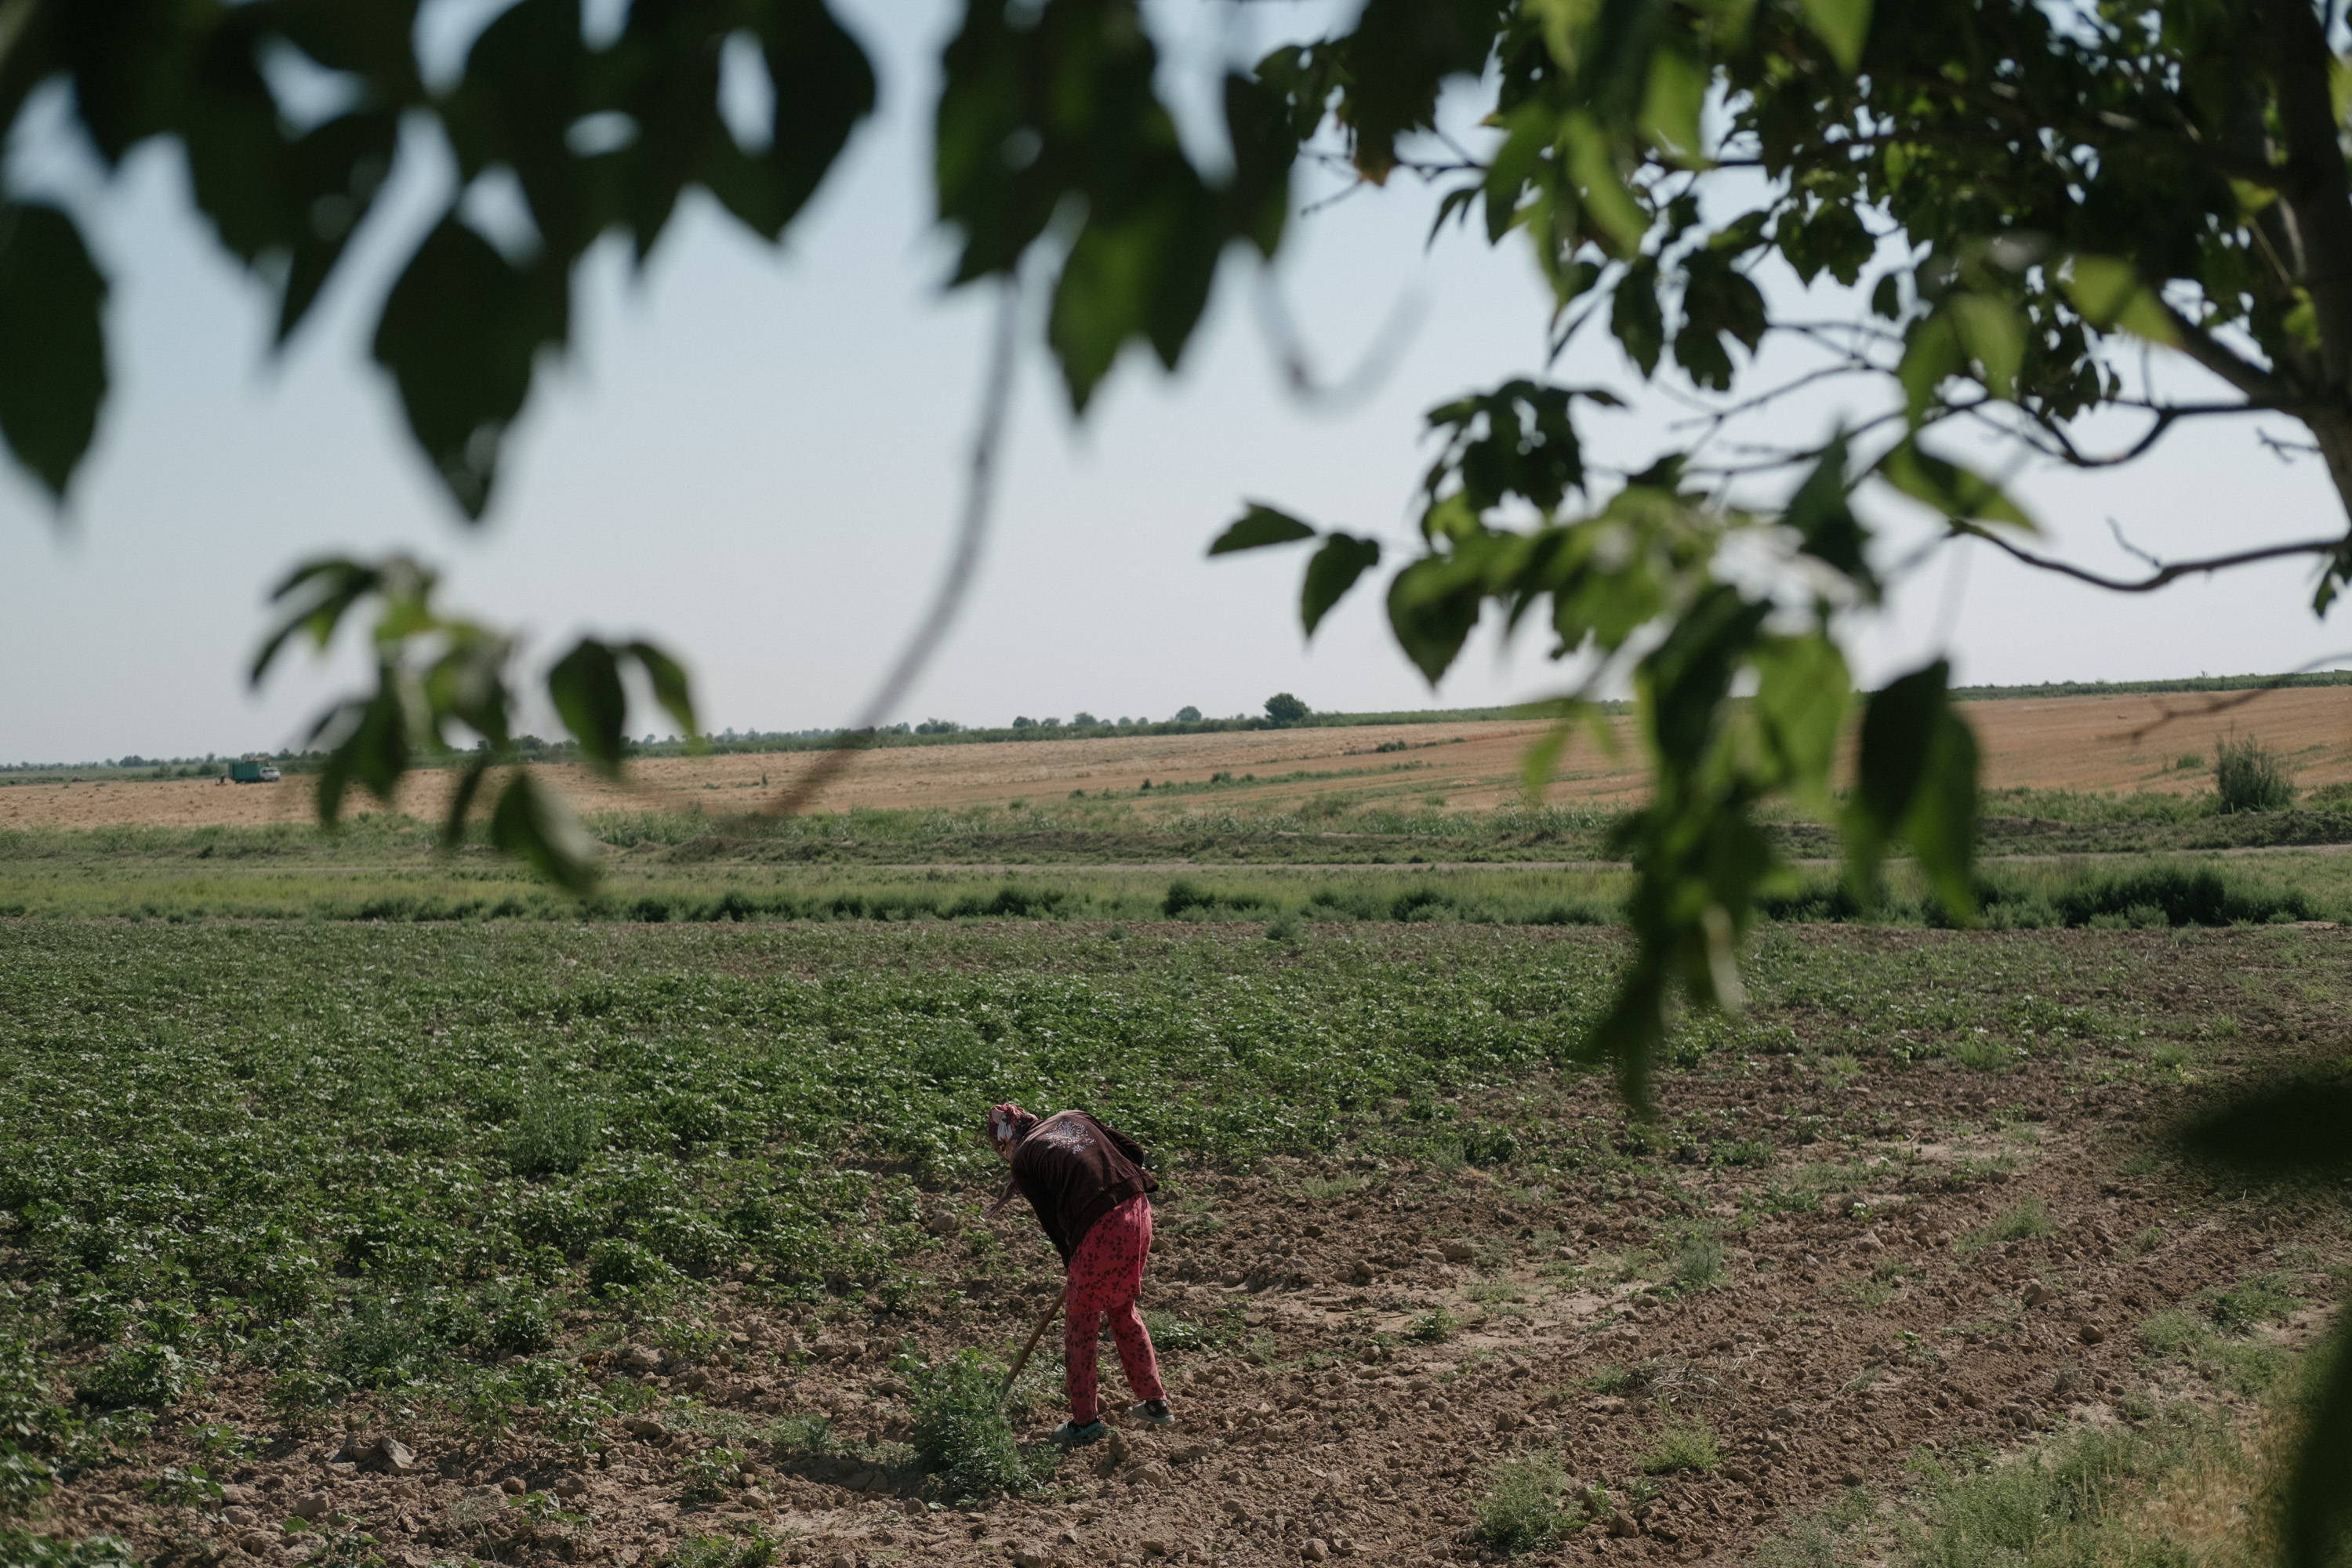 CHRONICLE OF FORCED LABOUR IN UZBEKISTAN